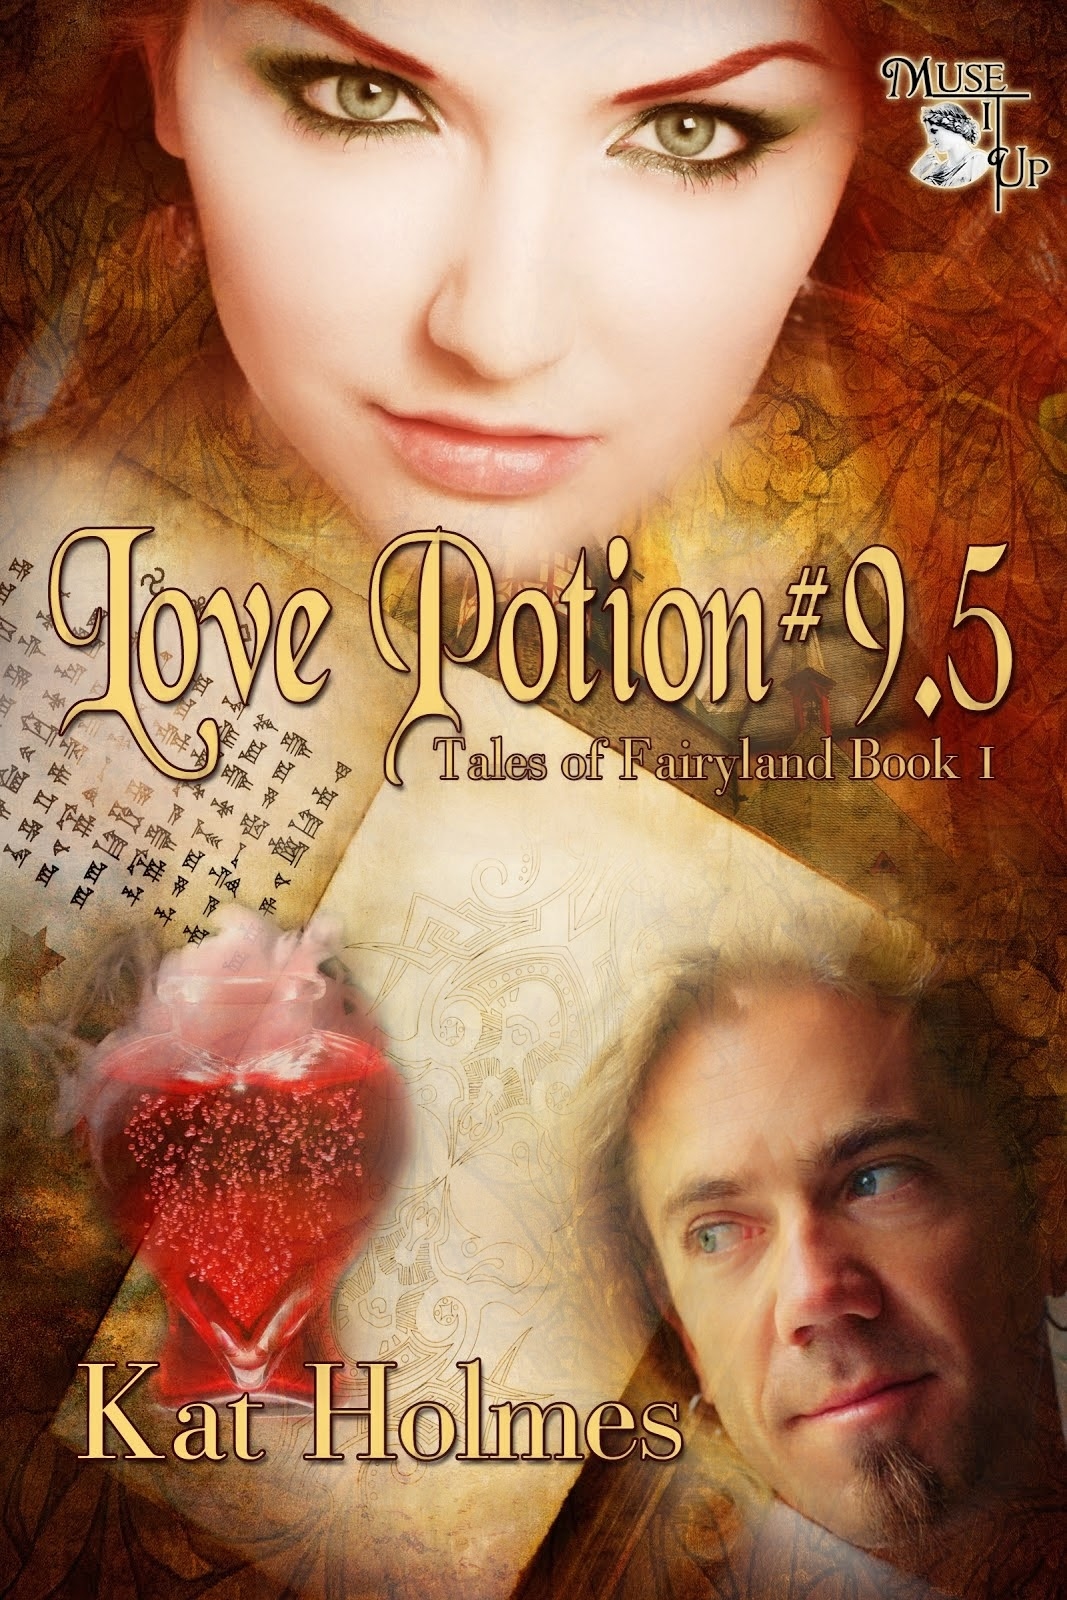 Love Poition # 9.5